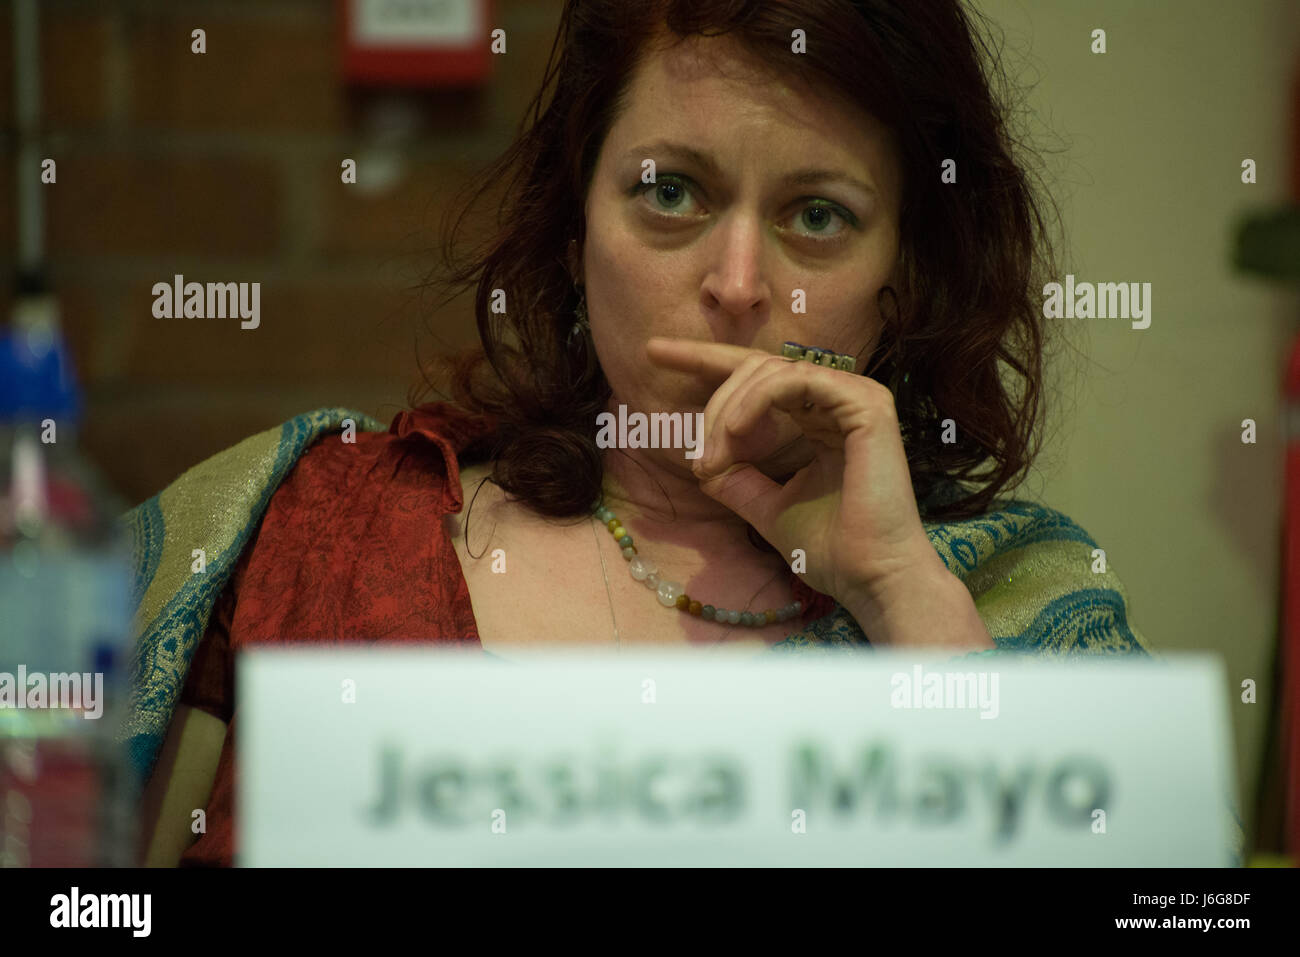 Stockport, UK. 21st May, 2017. Jessica Mayo, The Green Party of England and Wales Parliamentary candidate for the - Stock Image